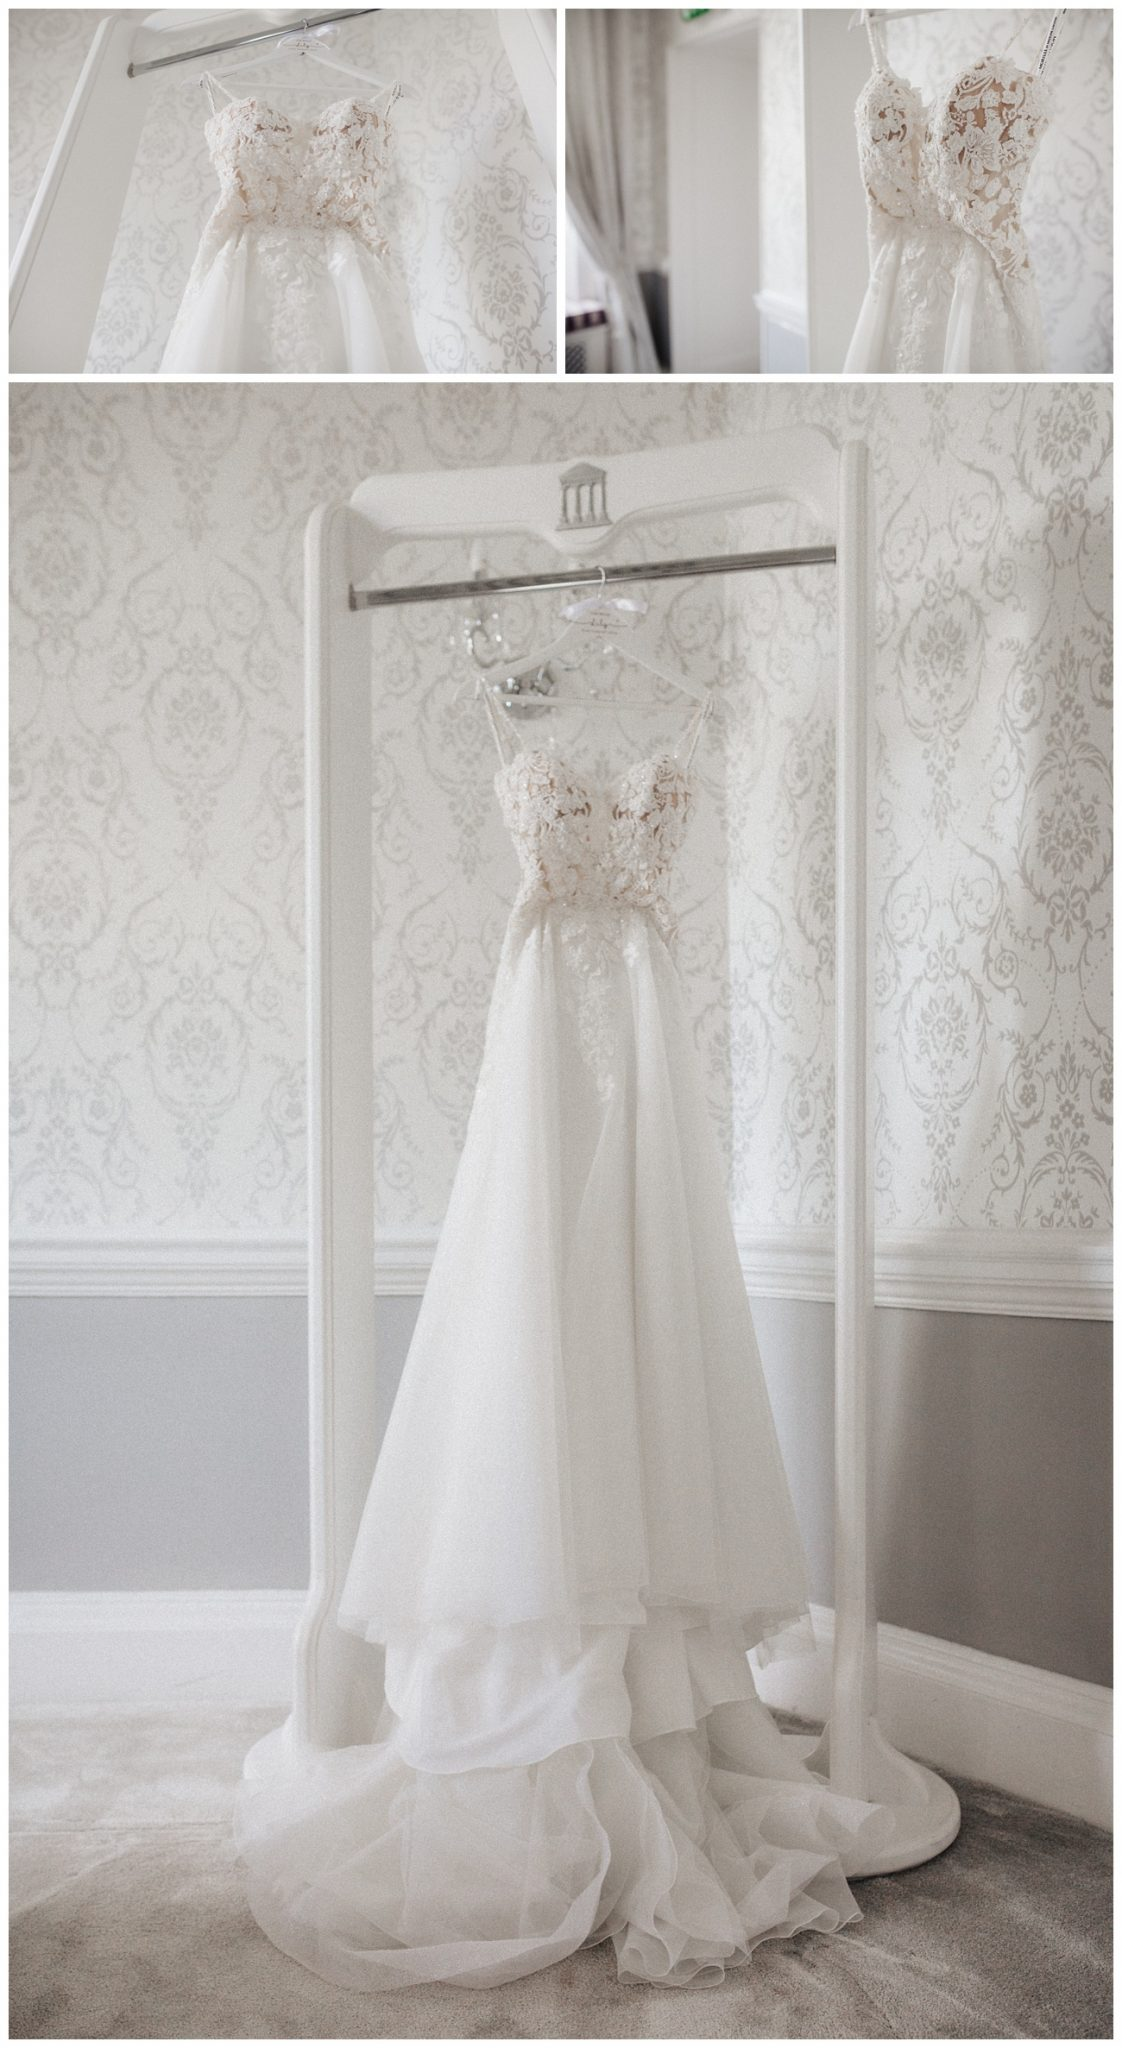 Wedding dress hanging in the bridal suite at Moor Park Mansion